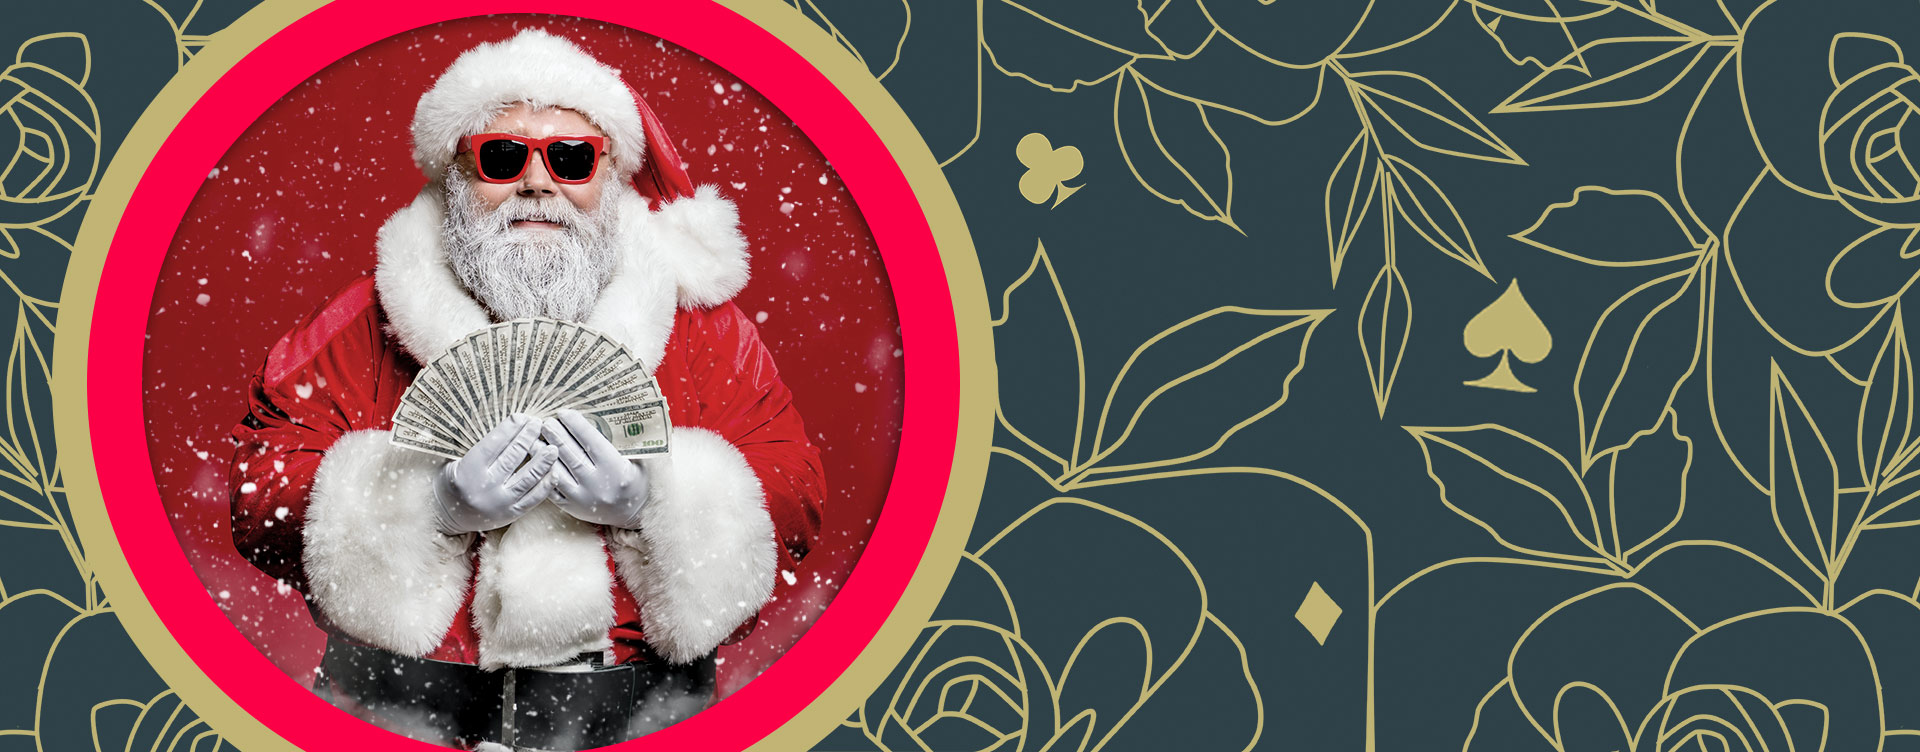 2019 Online Casino Christmas Promotions. Presents Waiting!